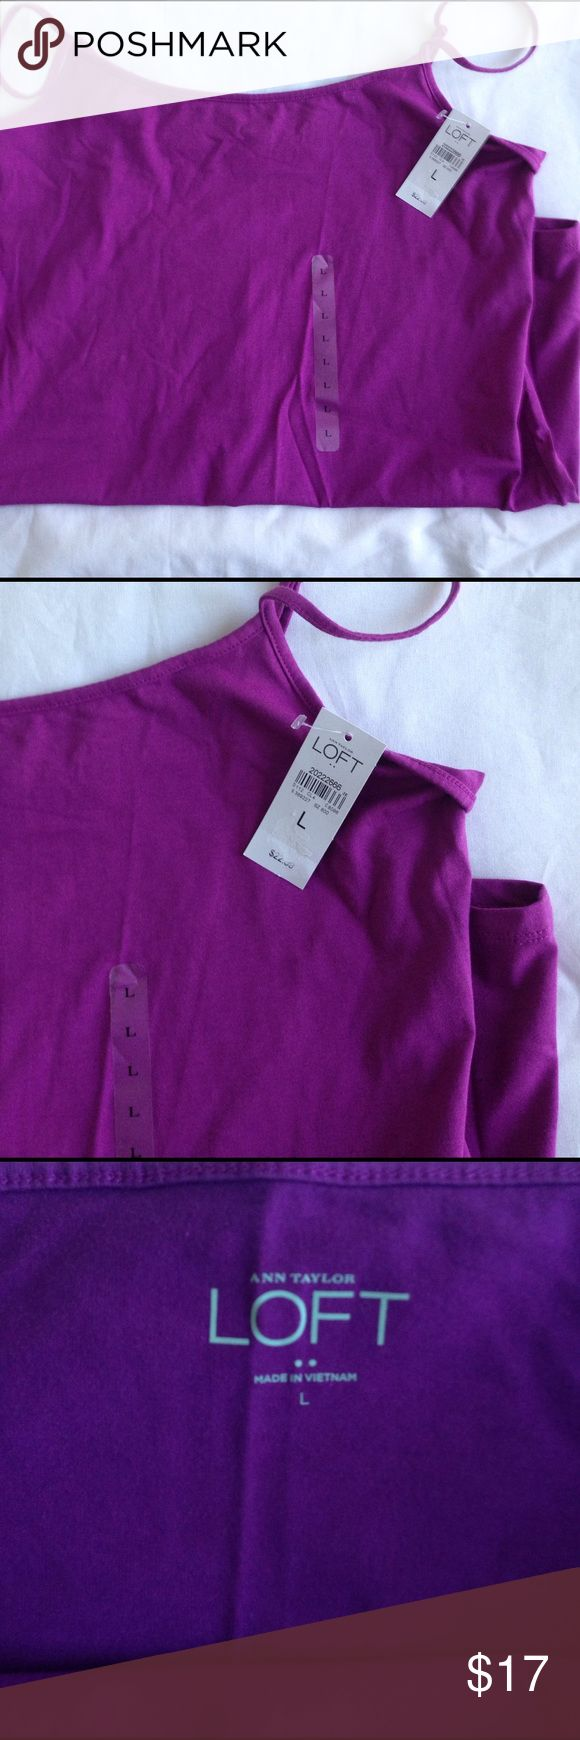 New Ann Taylor LOFT Purple Cami Top Women's Size L New Ann Taylor LOFT Purple Cami Top Women's Size Large, 95% Cotton 5% Spandex Stretch.  MSRP $22.99.   New With Tags. Ann Taylor LOFT Tops Camisoles